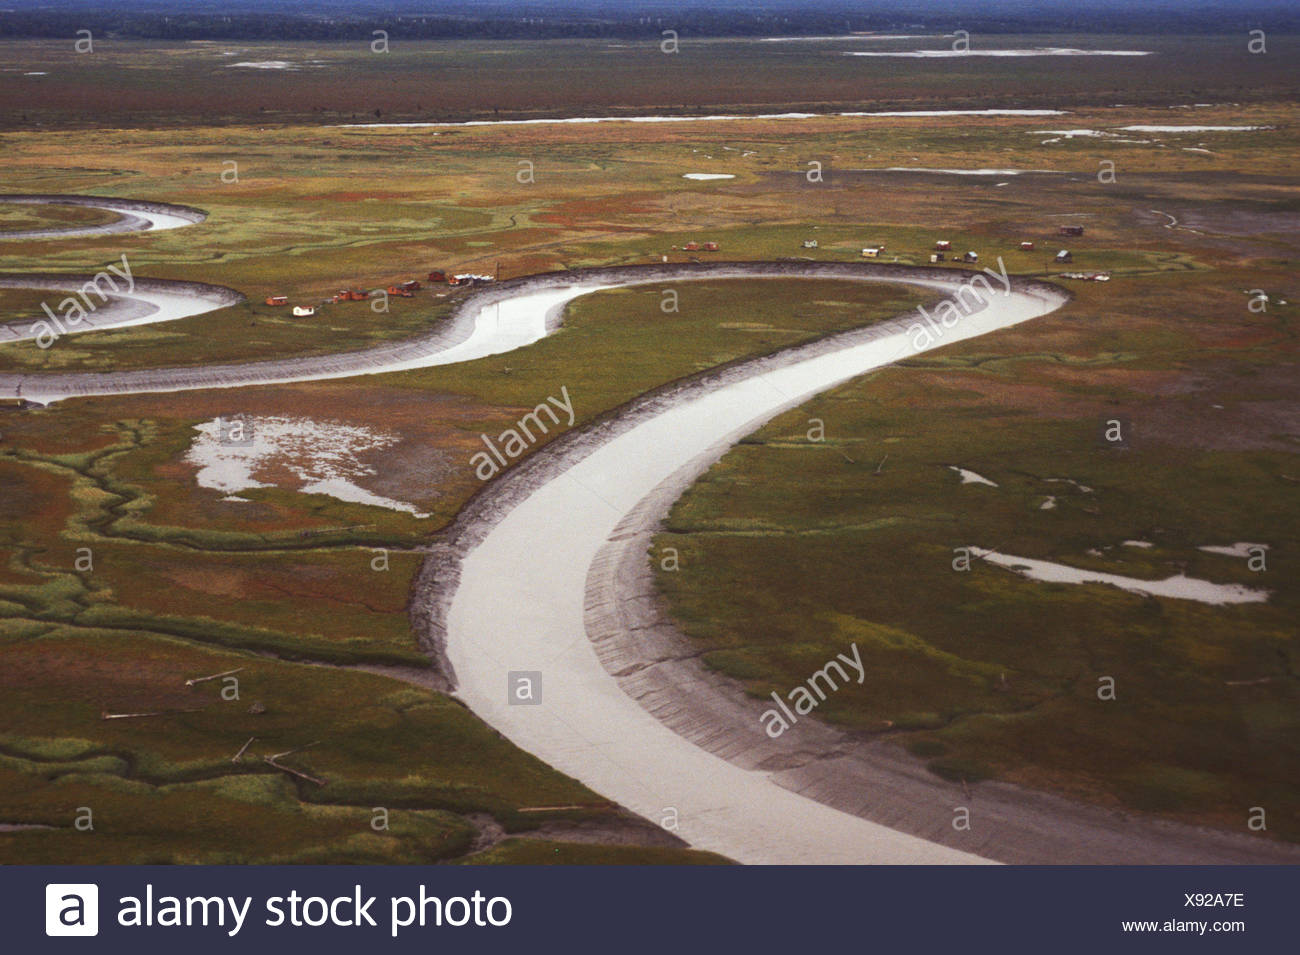 Costal Flats, Crook Inlet, Alaska, USA, snake, twisting, river, canal, channel, stream, irrigation, creek, farming, land, aerial - Stock Image